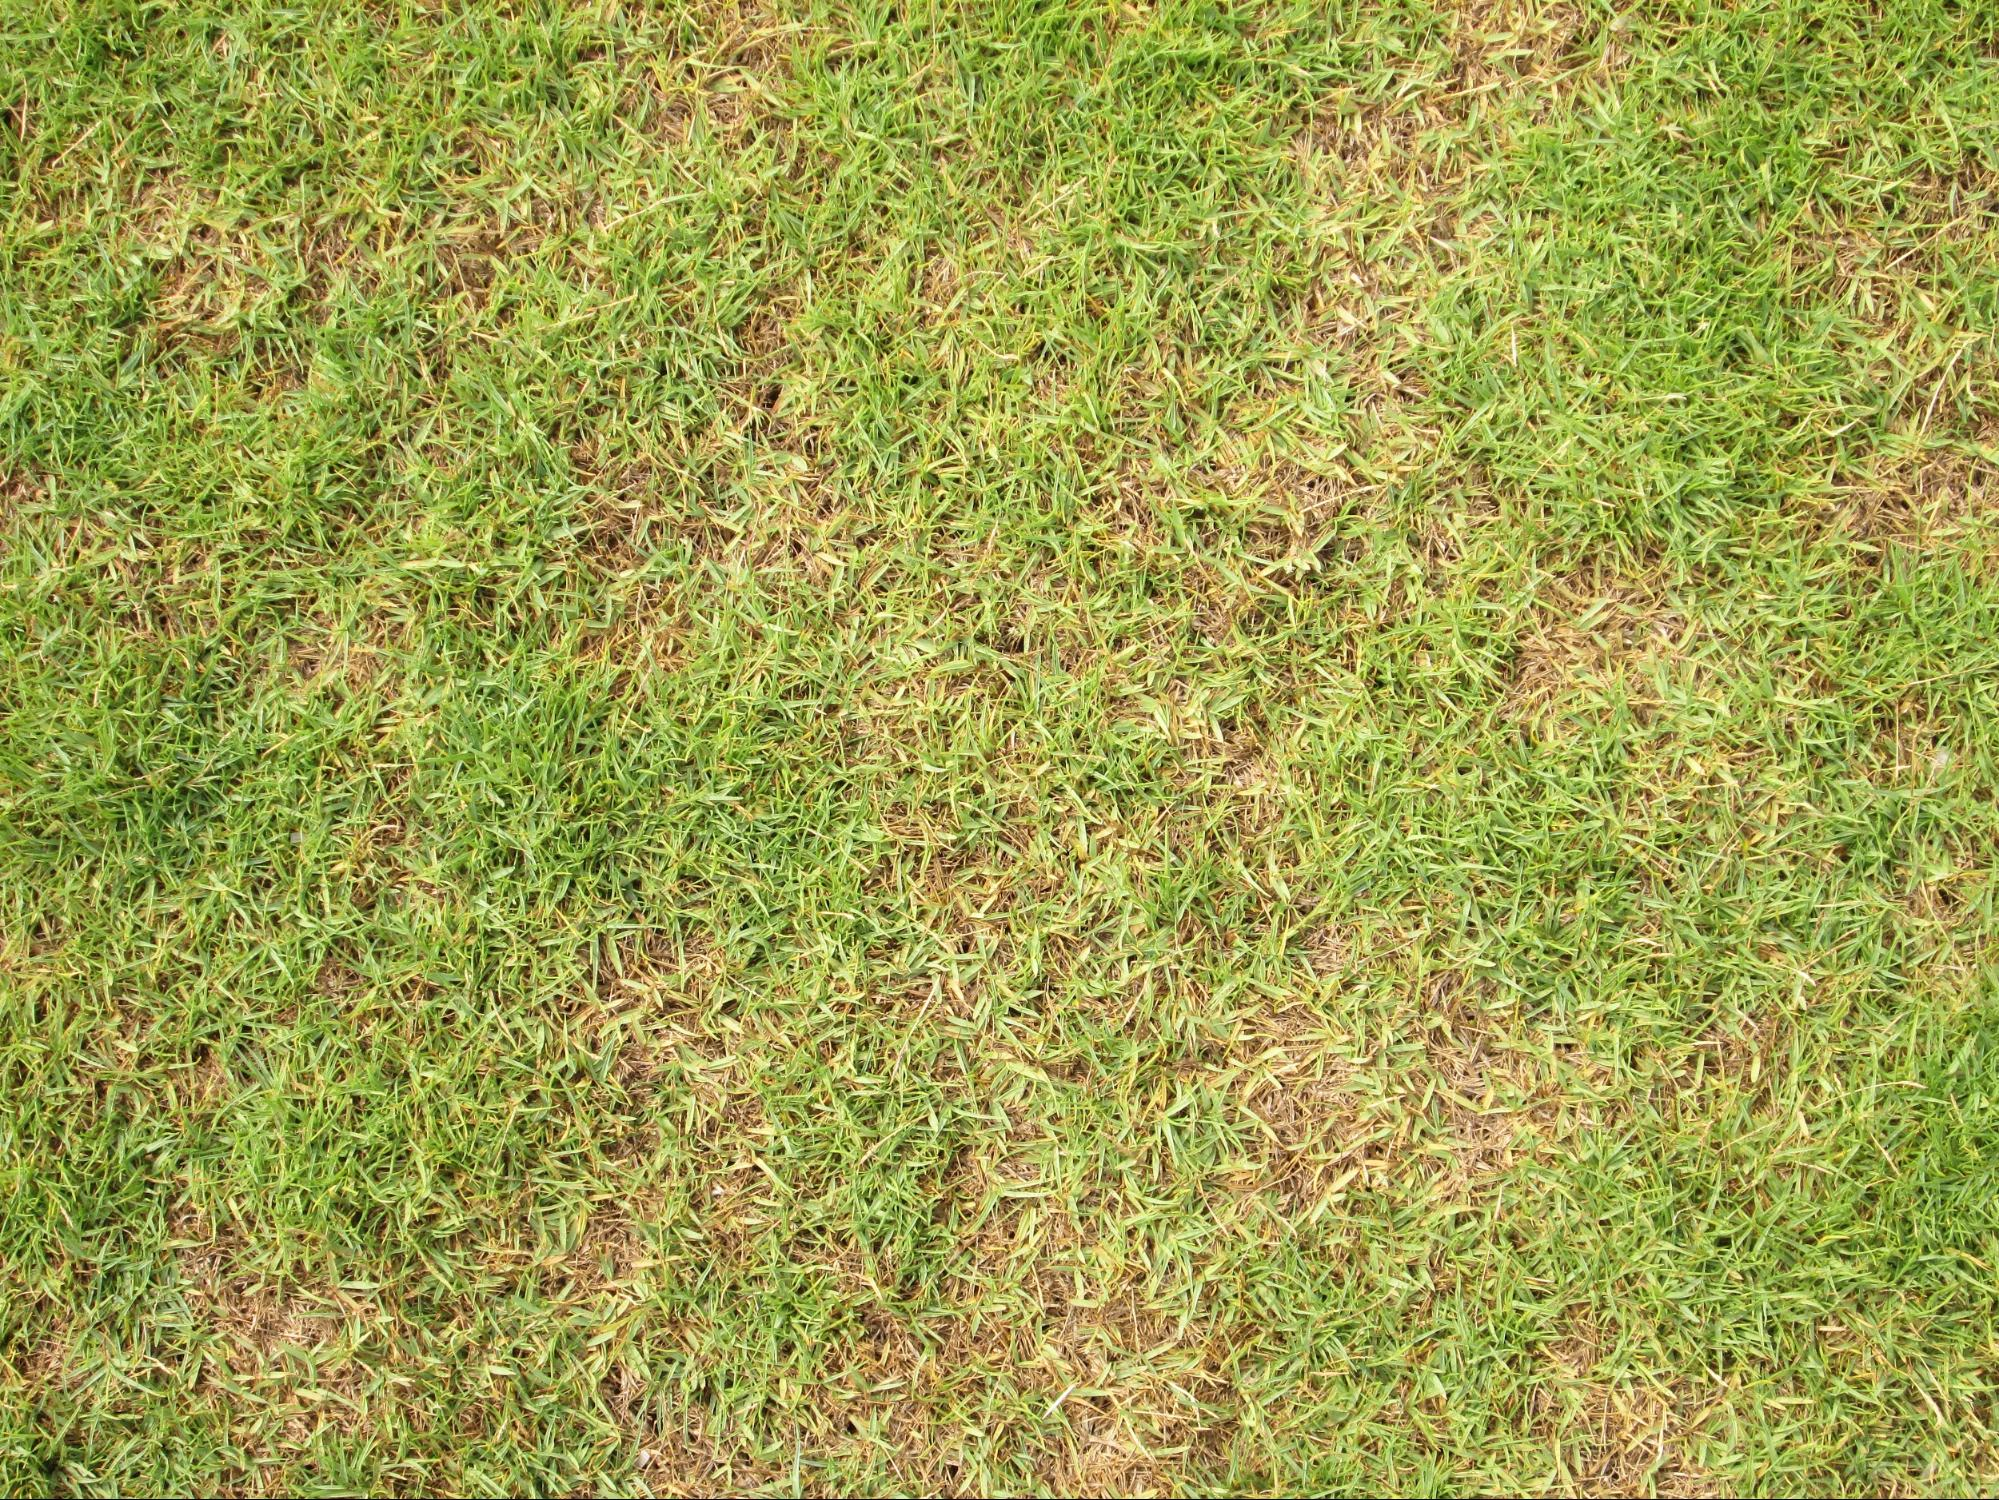 How to treat and prevent brown patch